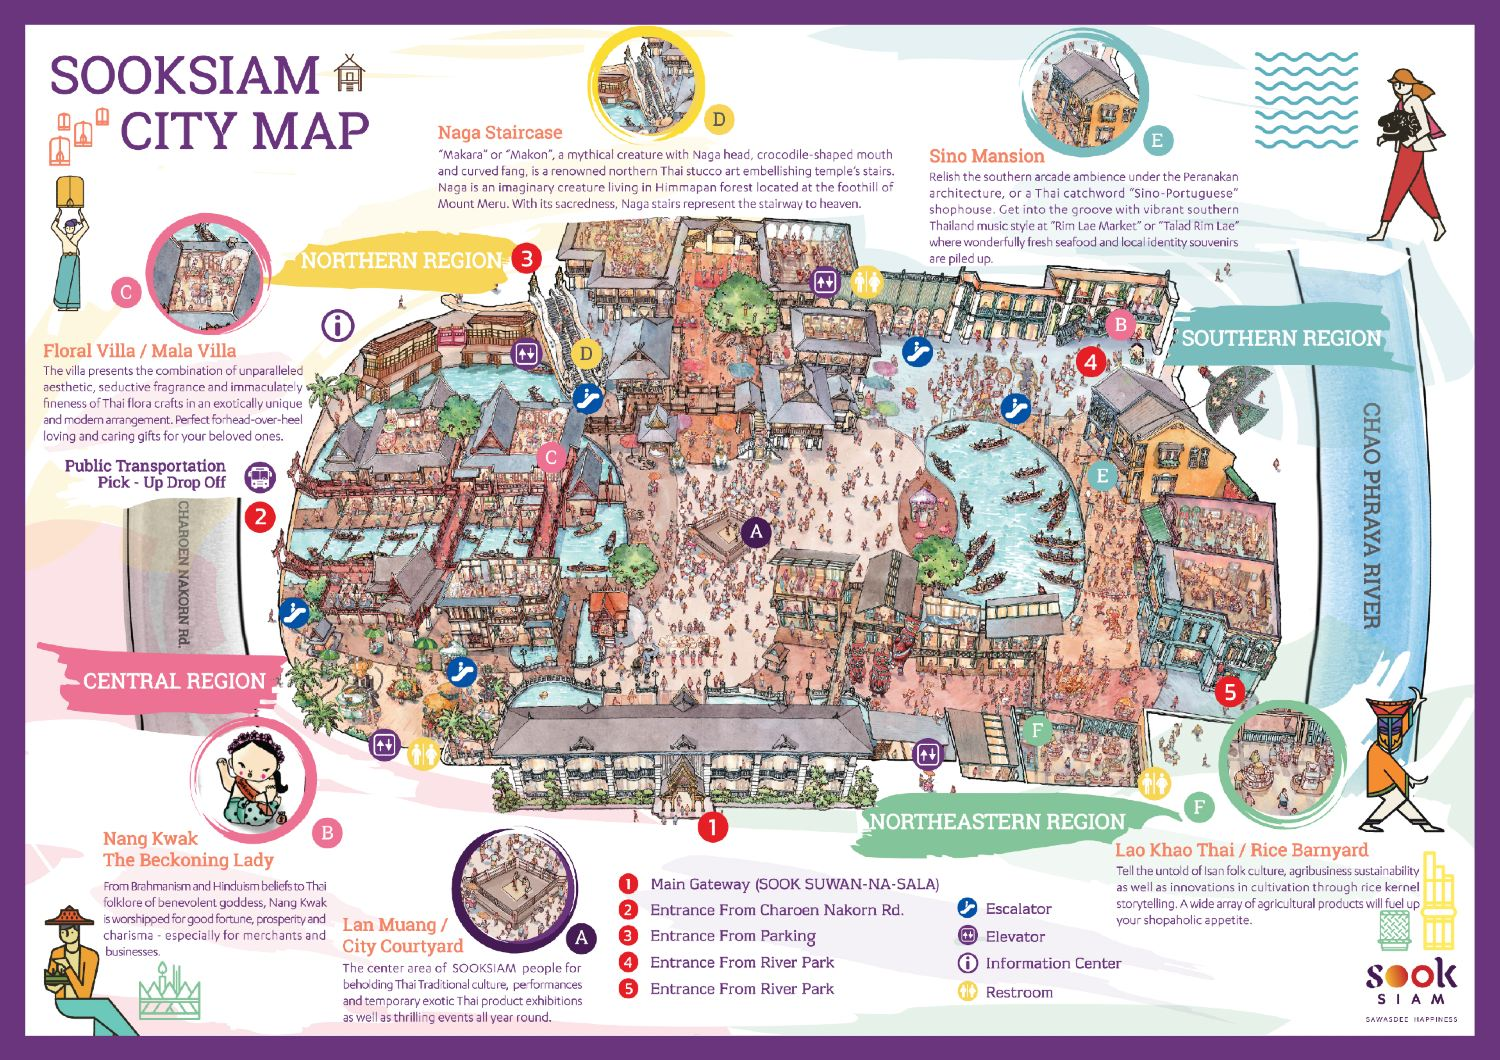 The map of SOOKSIAM in ICONSIAM, Bangkok Thailand